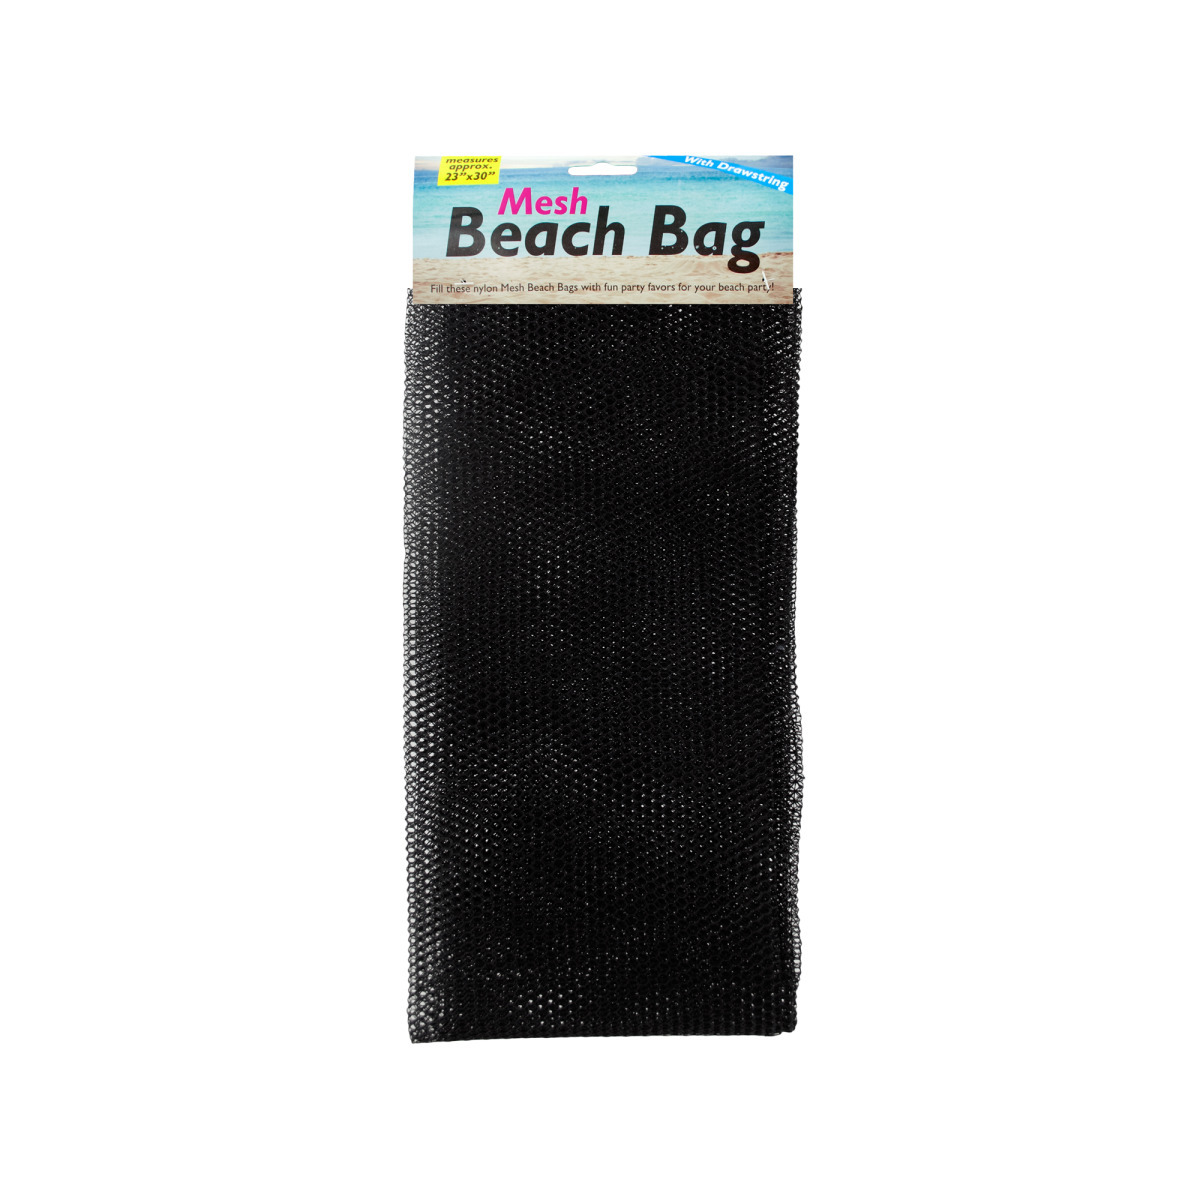 Mesh BEACH BAG with Drawstring [1866197]